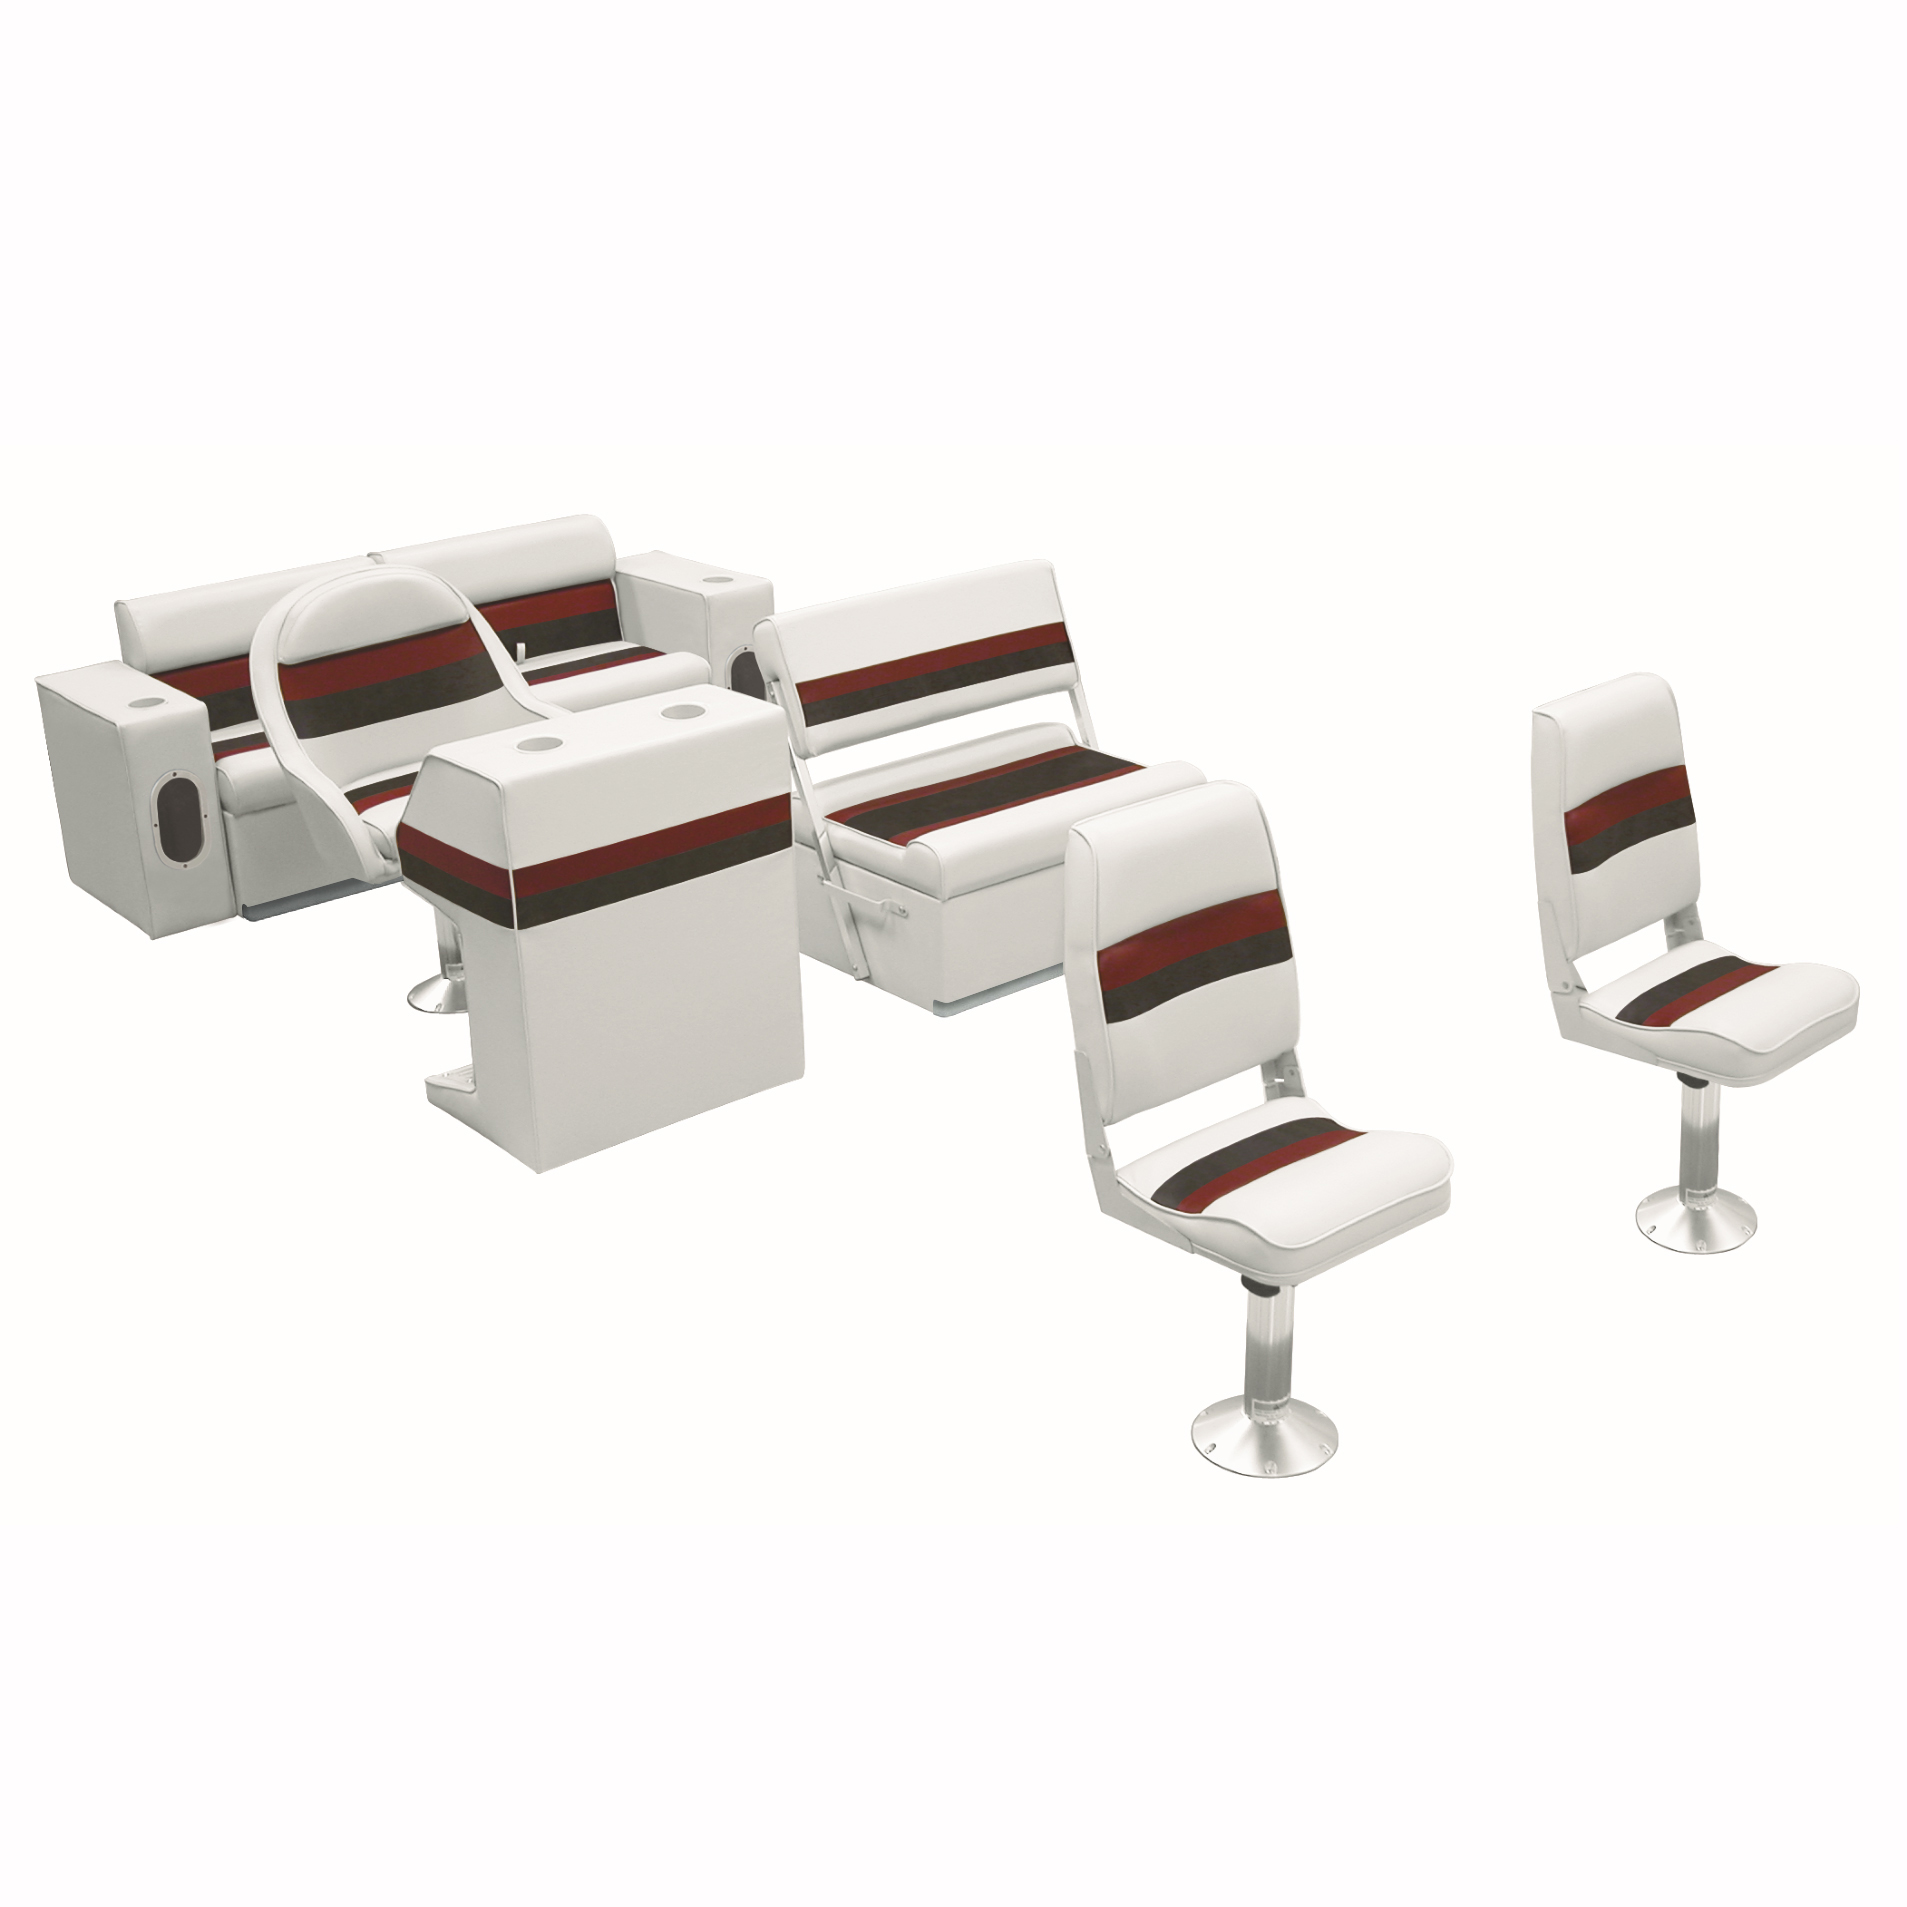 Toonmate Deluxe Pontoon Furniture w/Toe Kick Base, Fishing Package Plus Stand